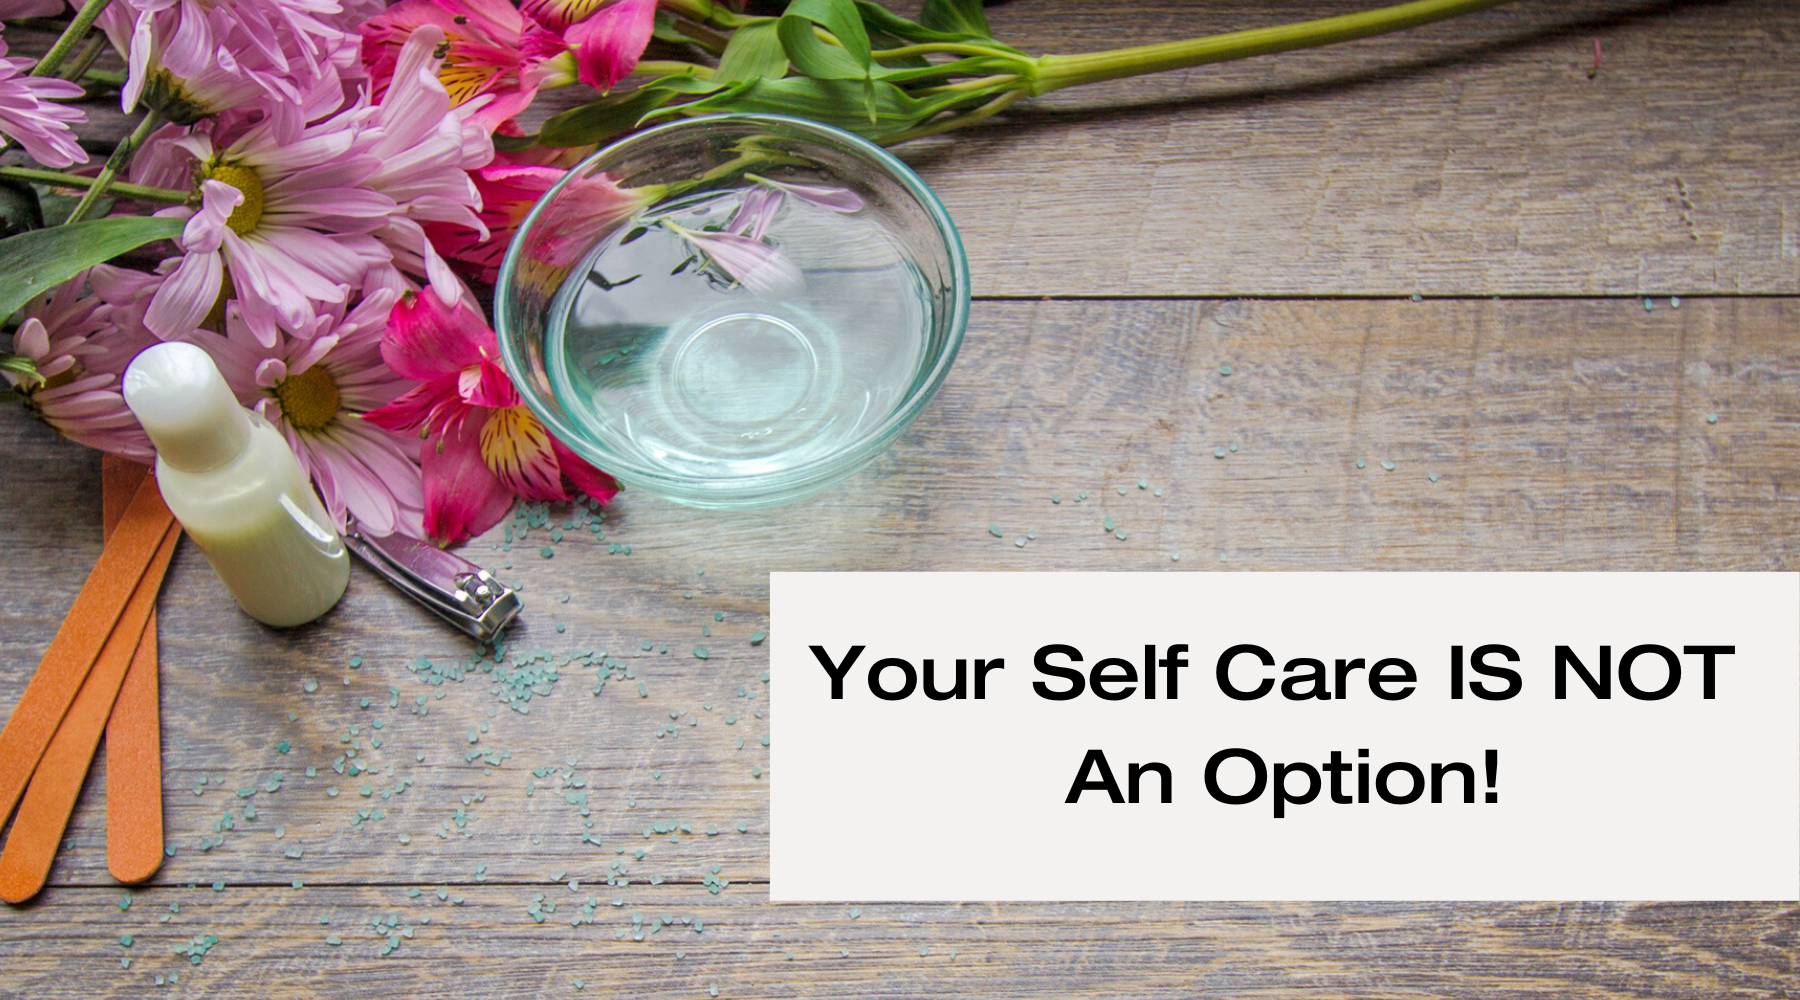 Your Self Care IS NOT An Option!